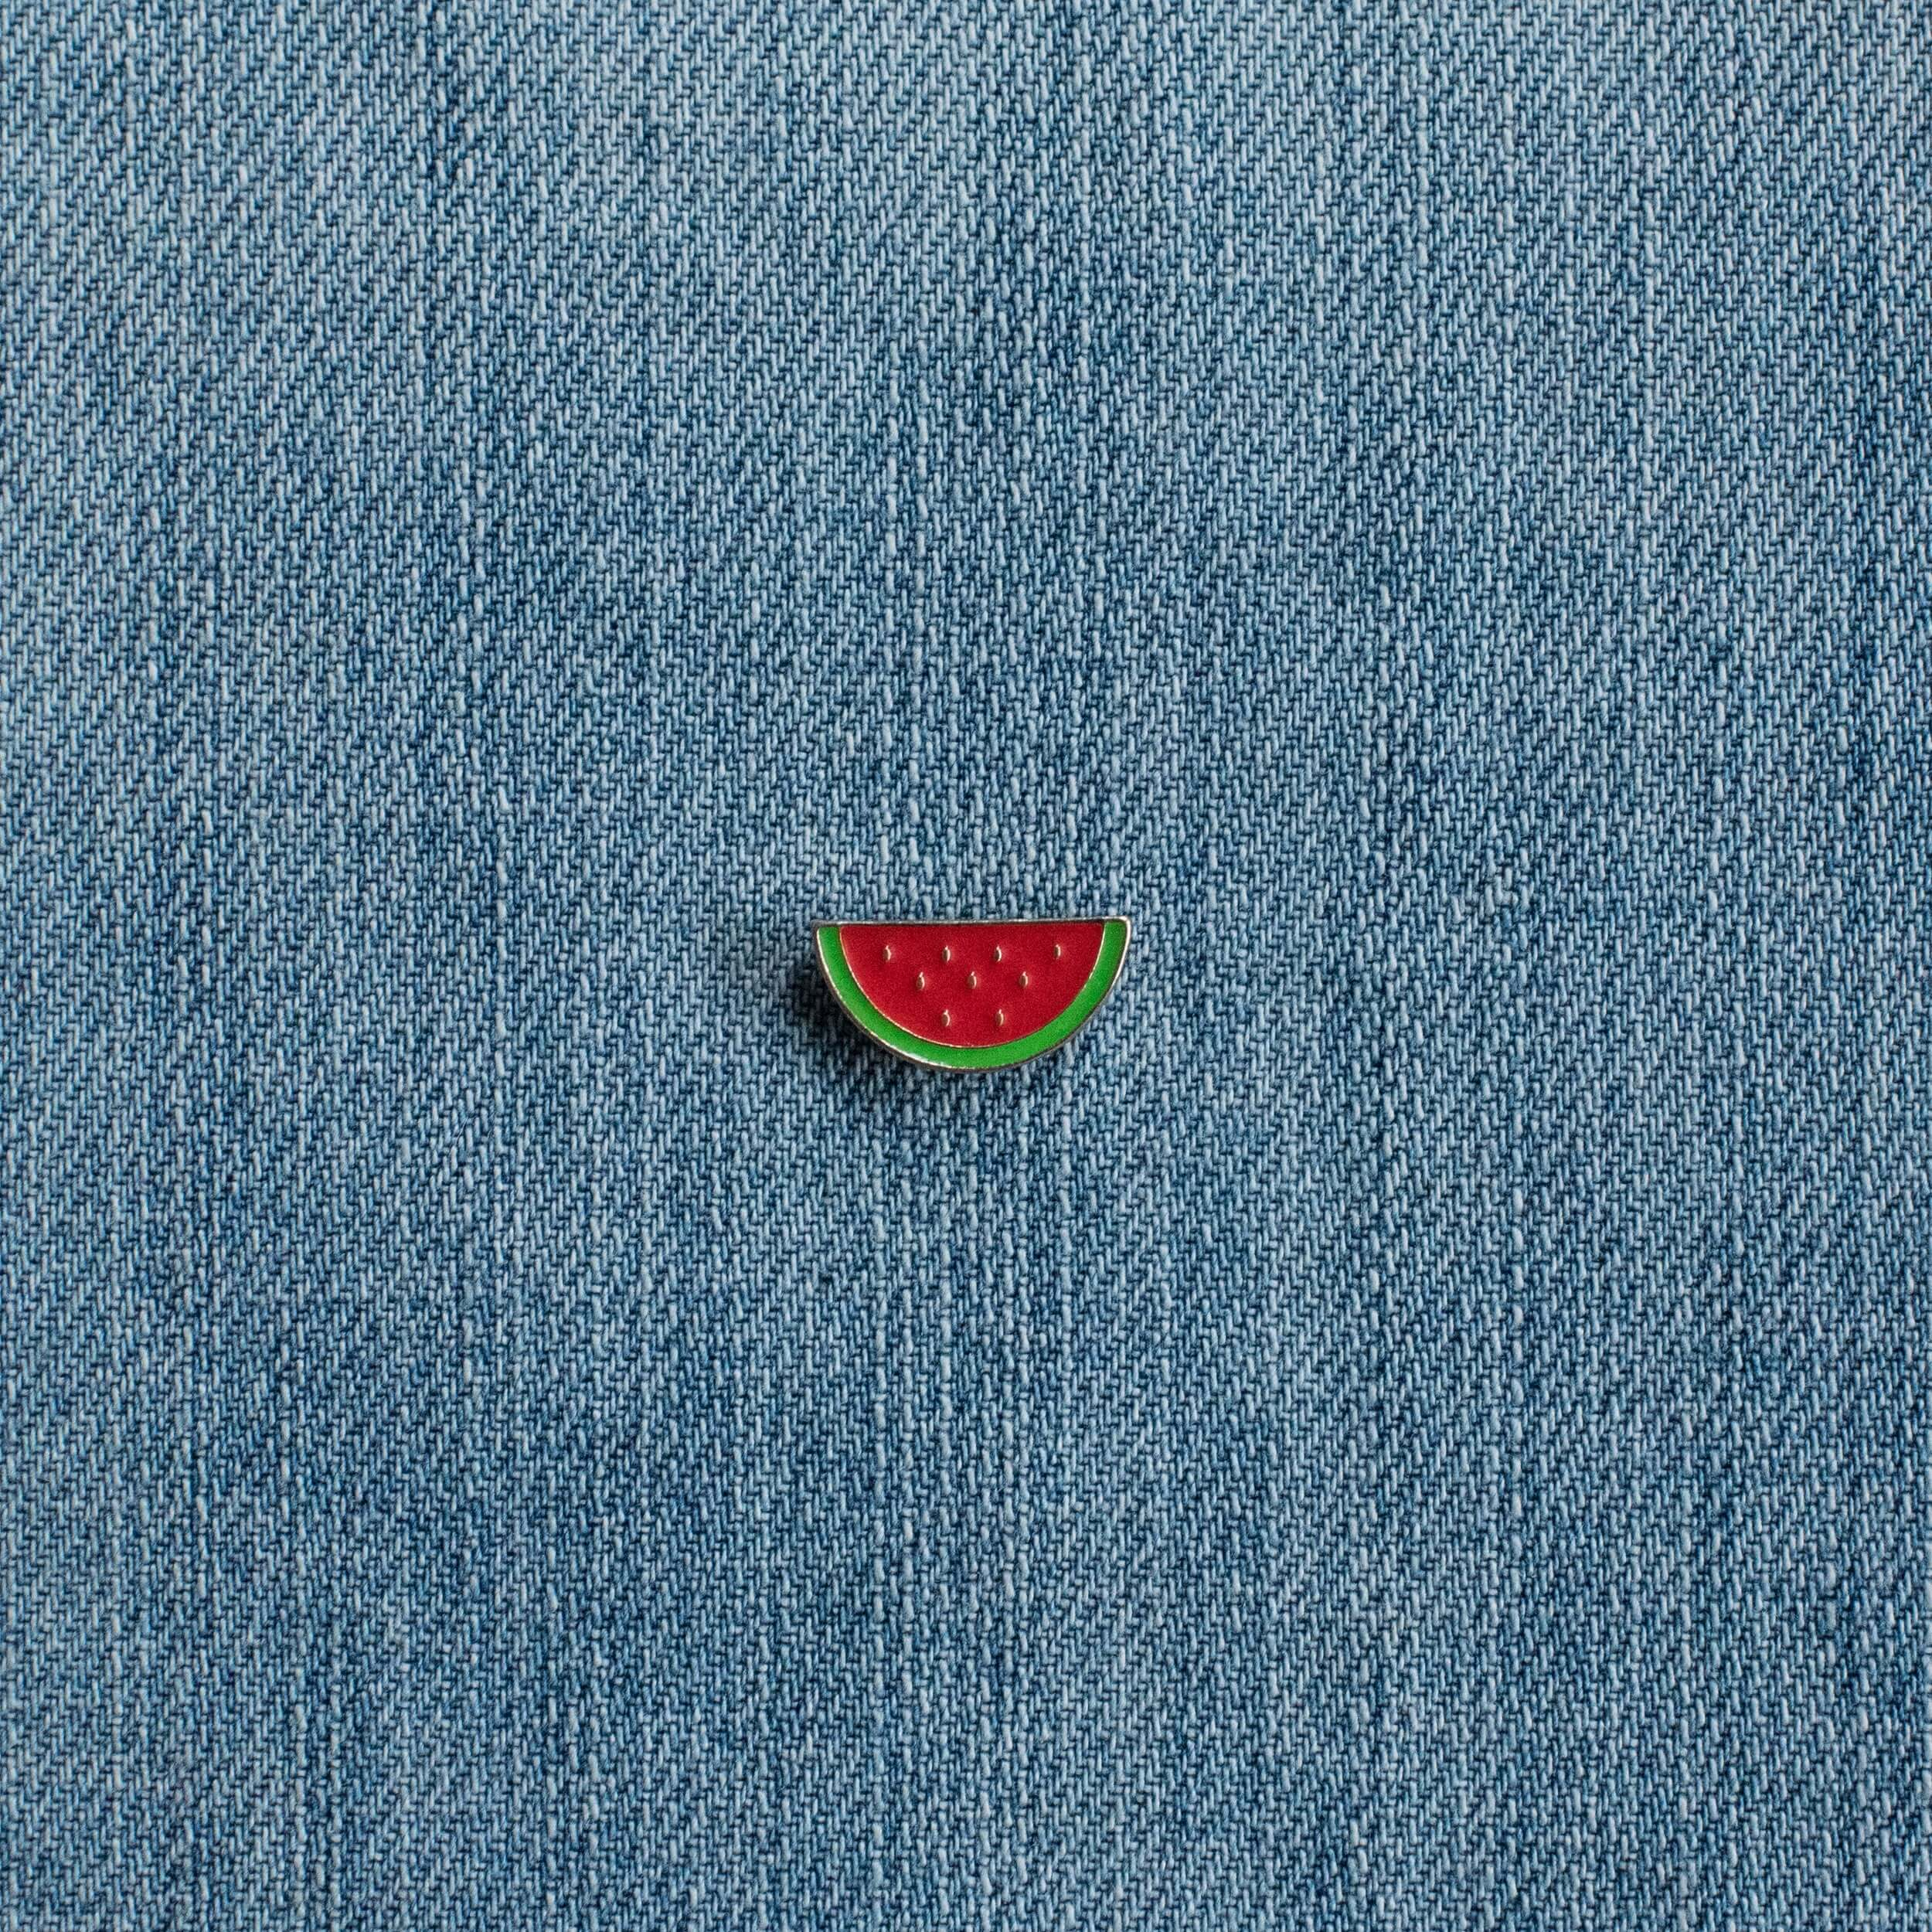 watermelon-enamel-pin-denim_4460x4460